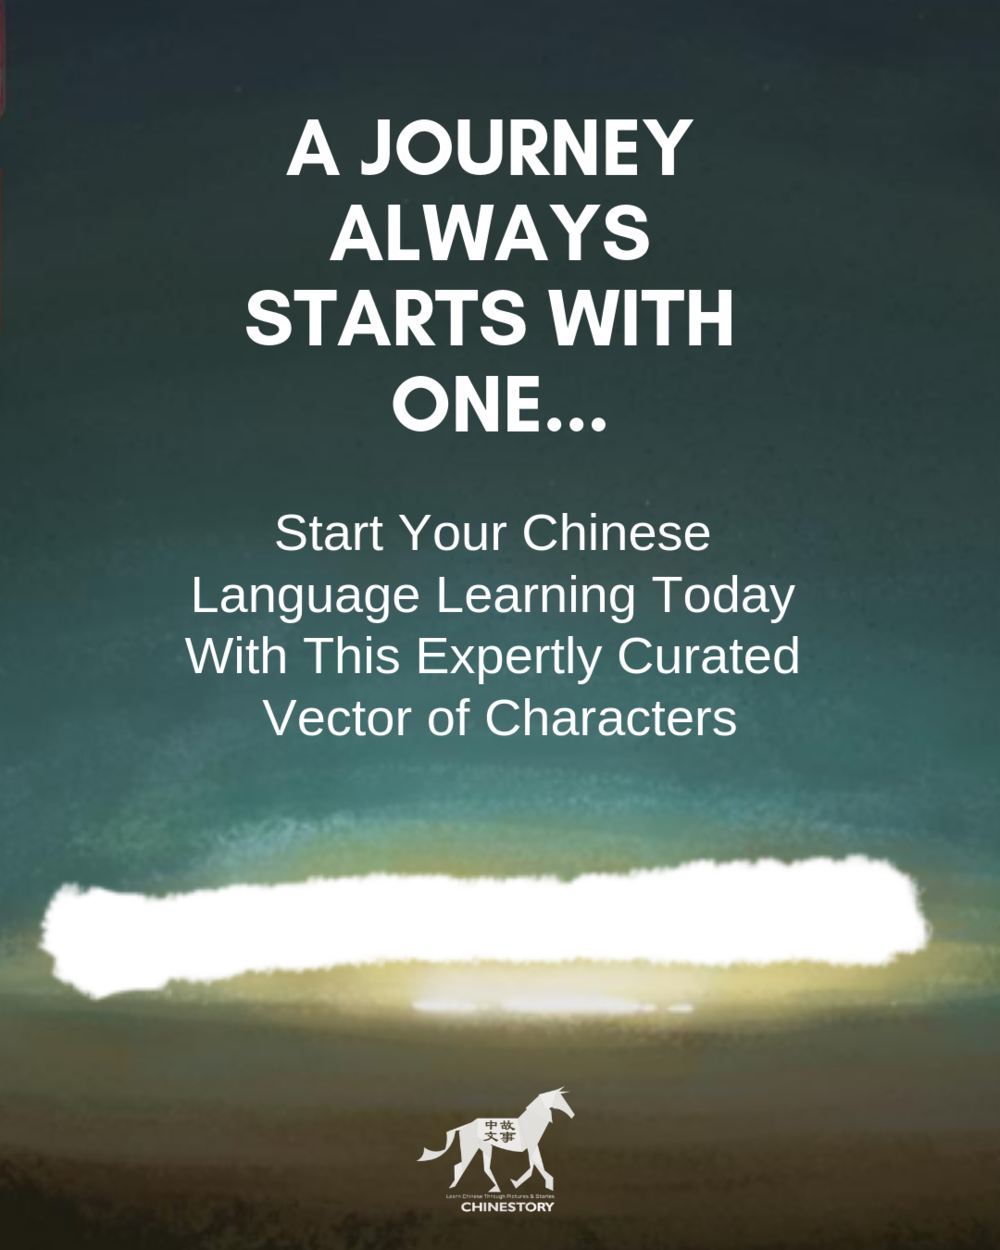 Start your Chinese Language Learning Today with This Expertly Curated List of Characters